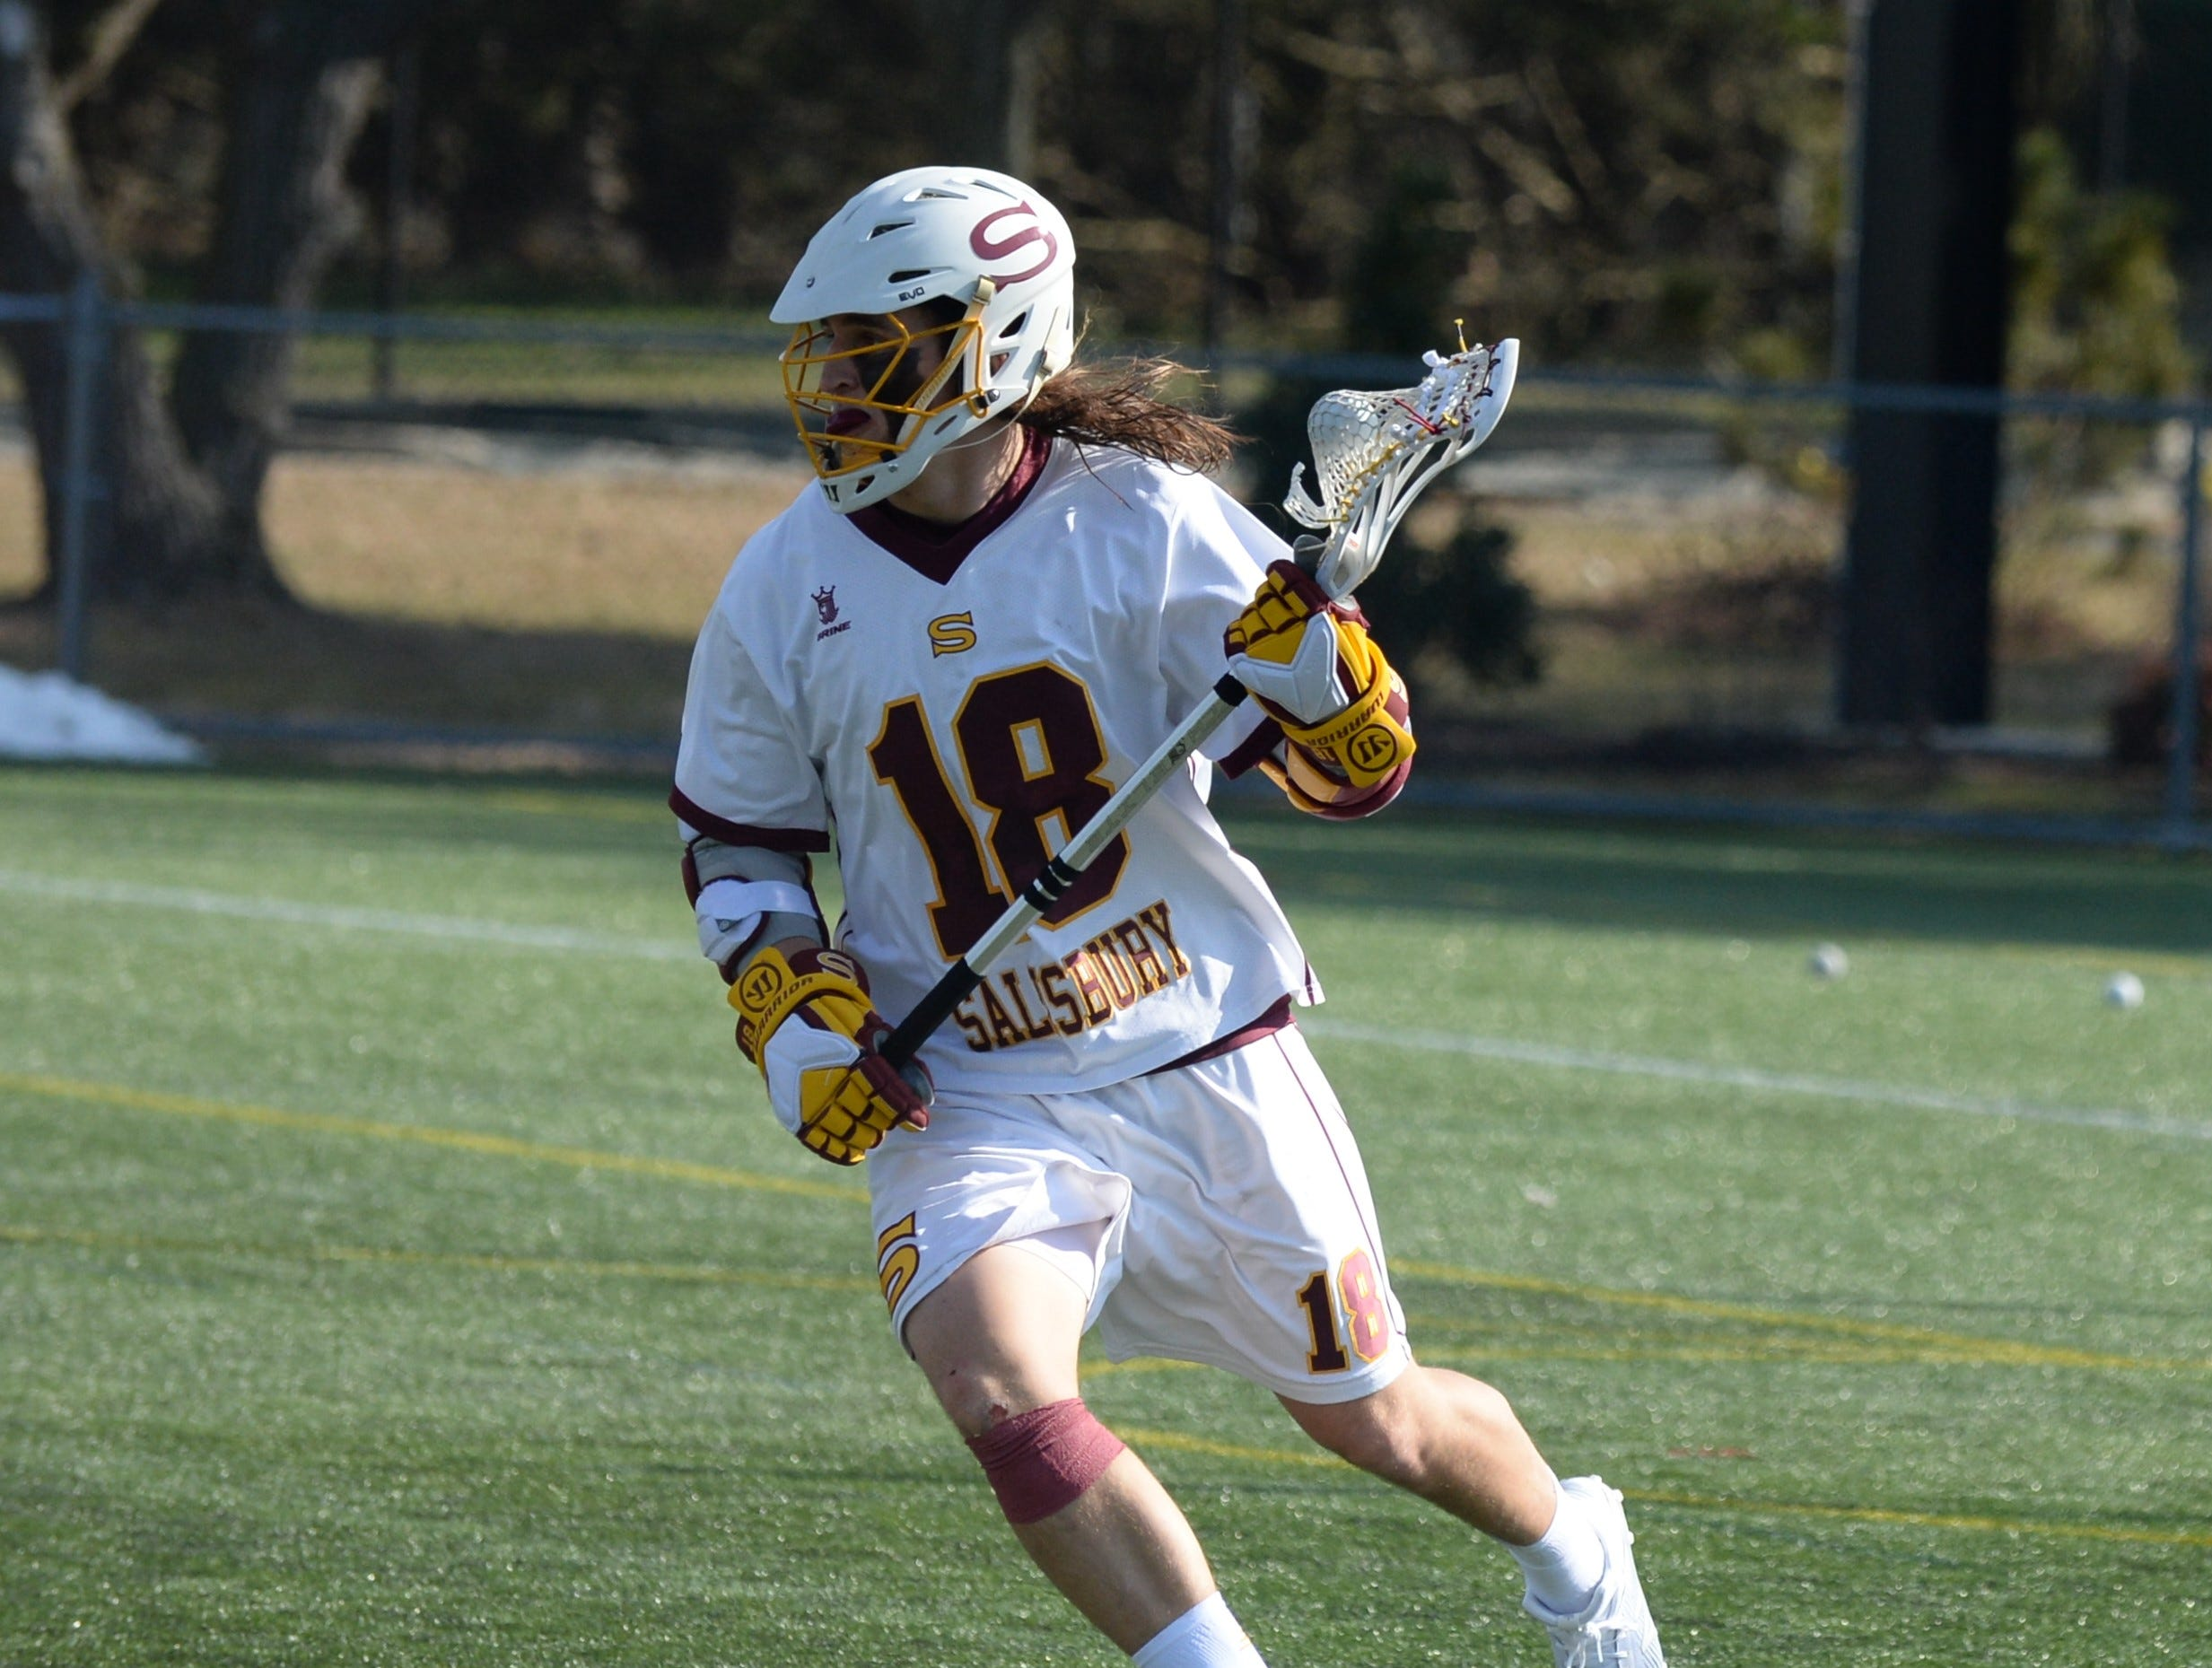 Salisbury University's Corey Gwin circles the goal against Berry College on Sunday, Feb. 3, 2019.